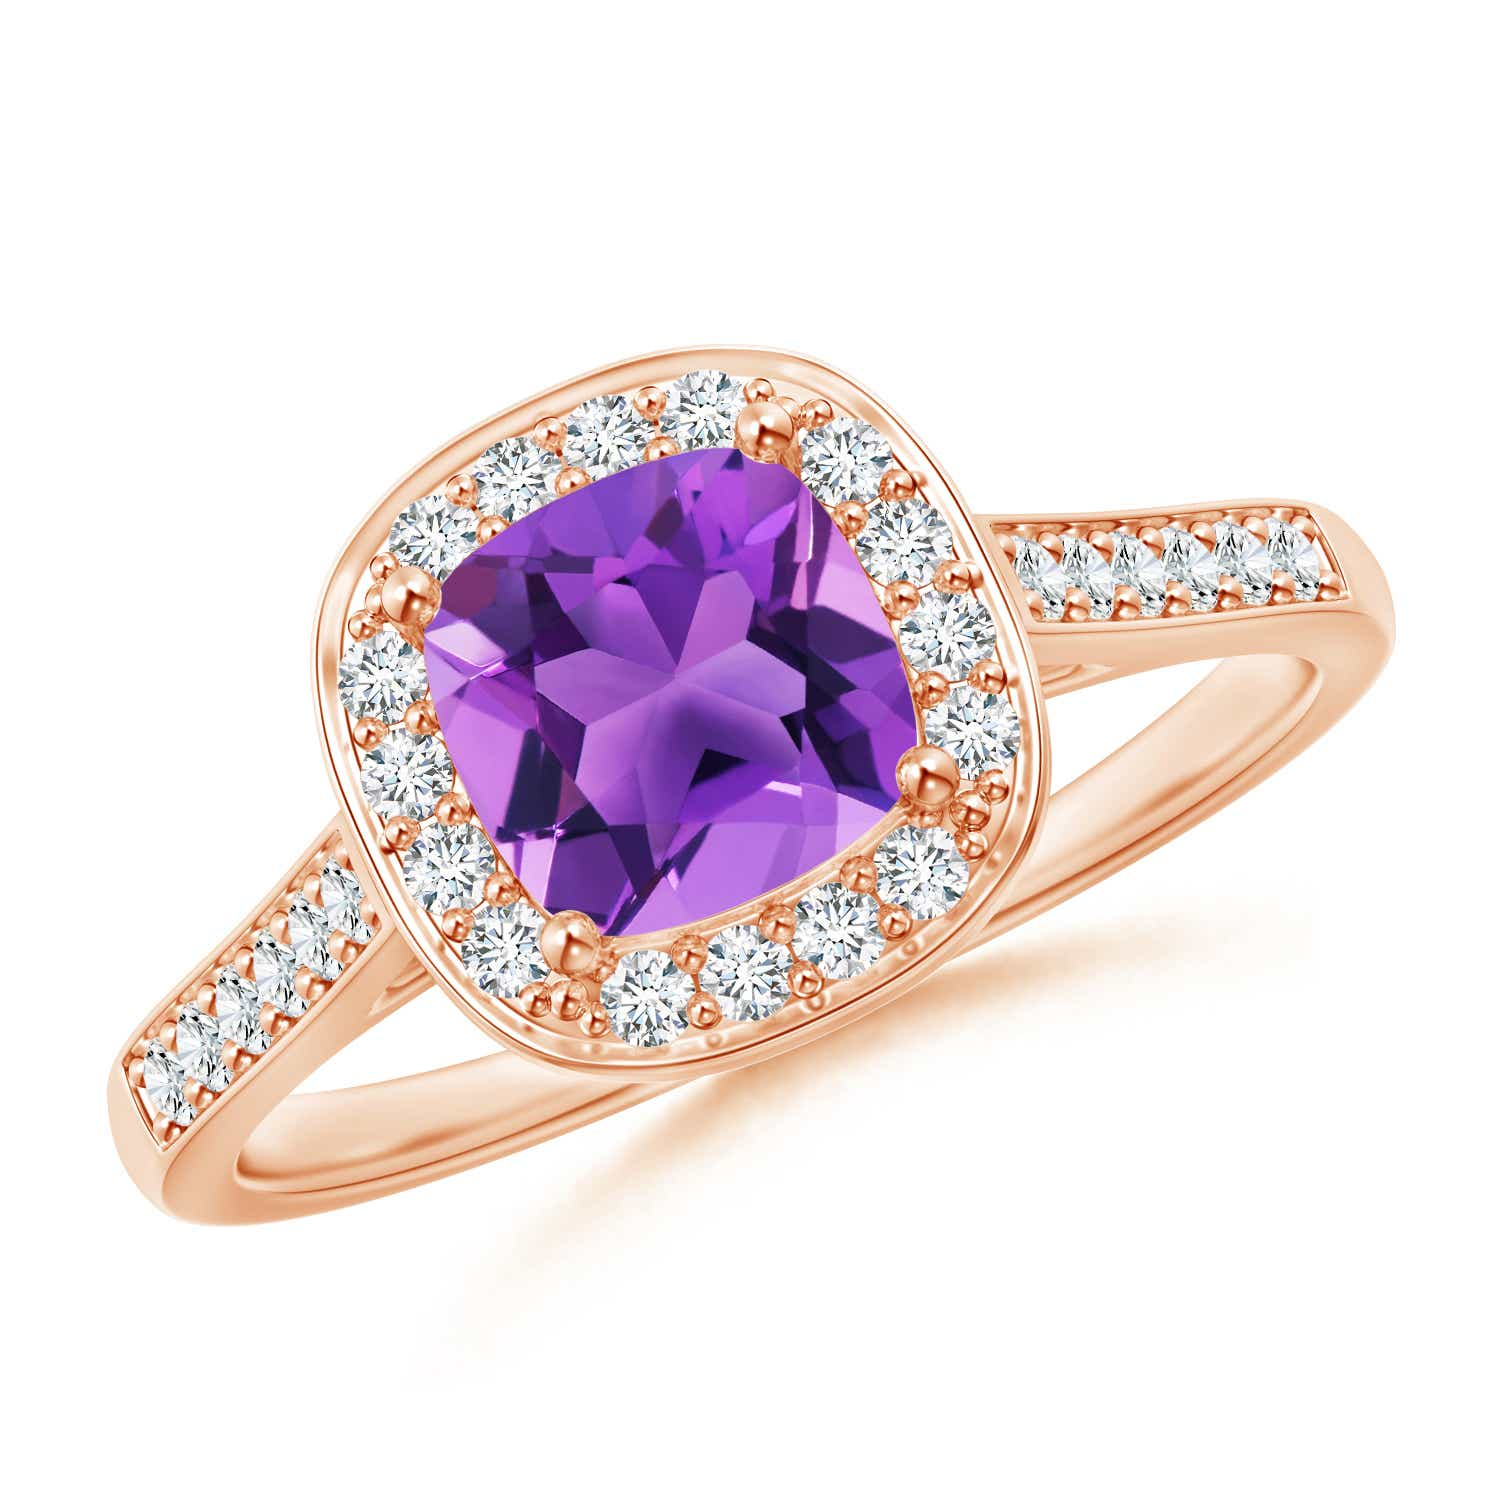 Vintage Inspired Diamond Halo Cushion-Cut Amethyst Ring - Angara.com